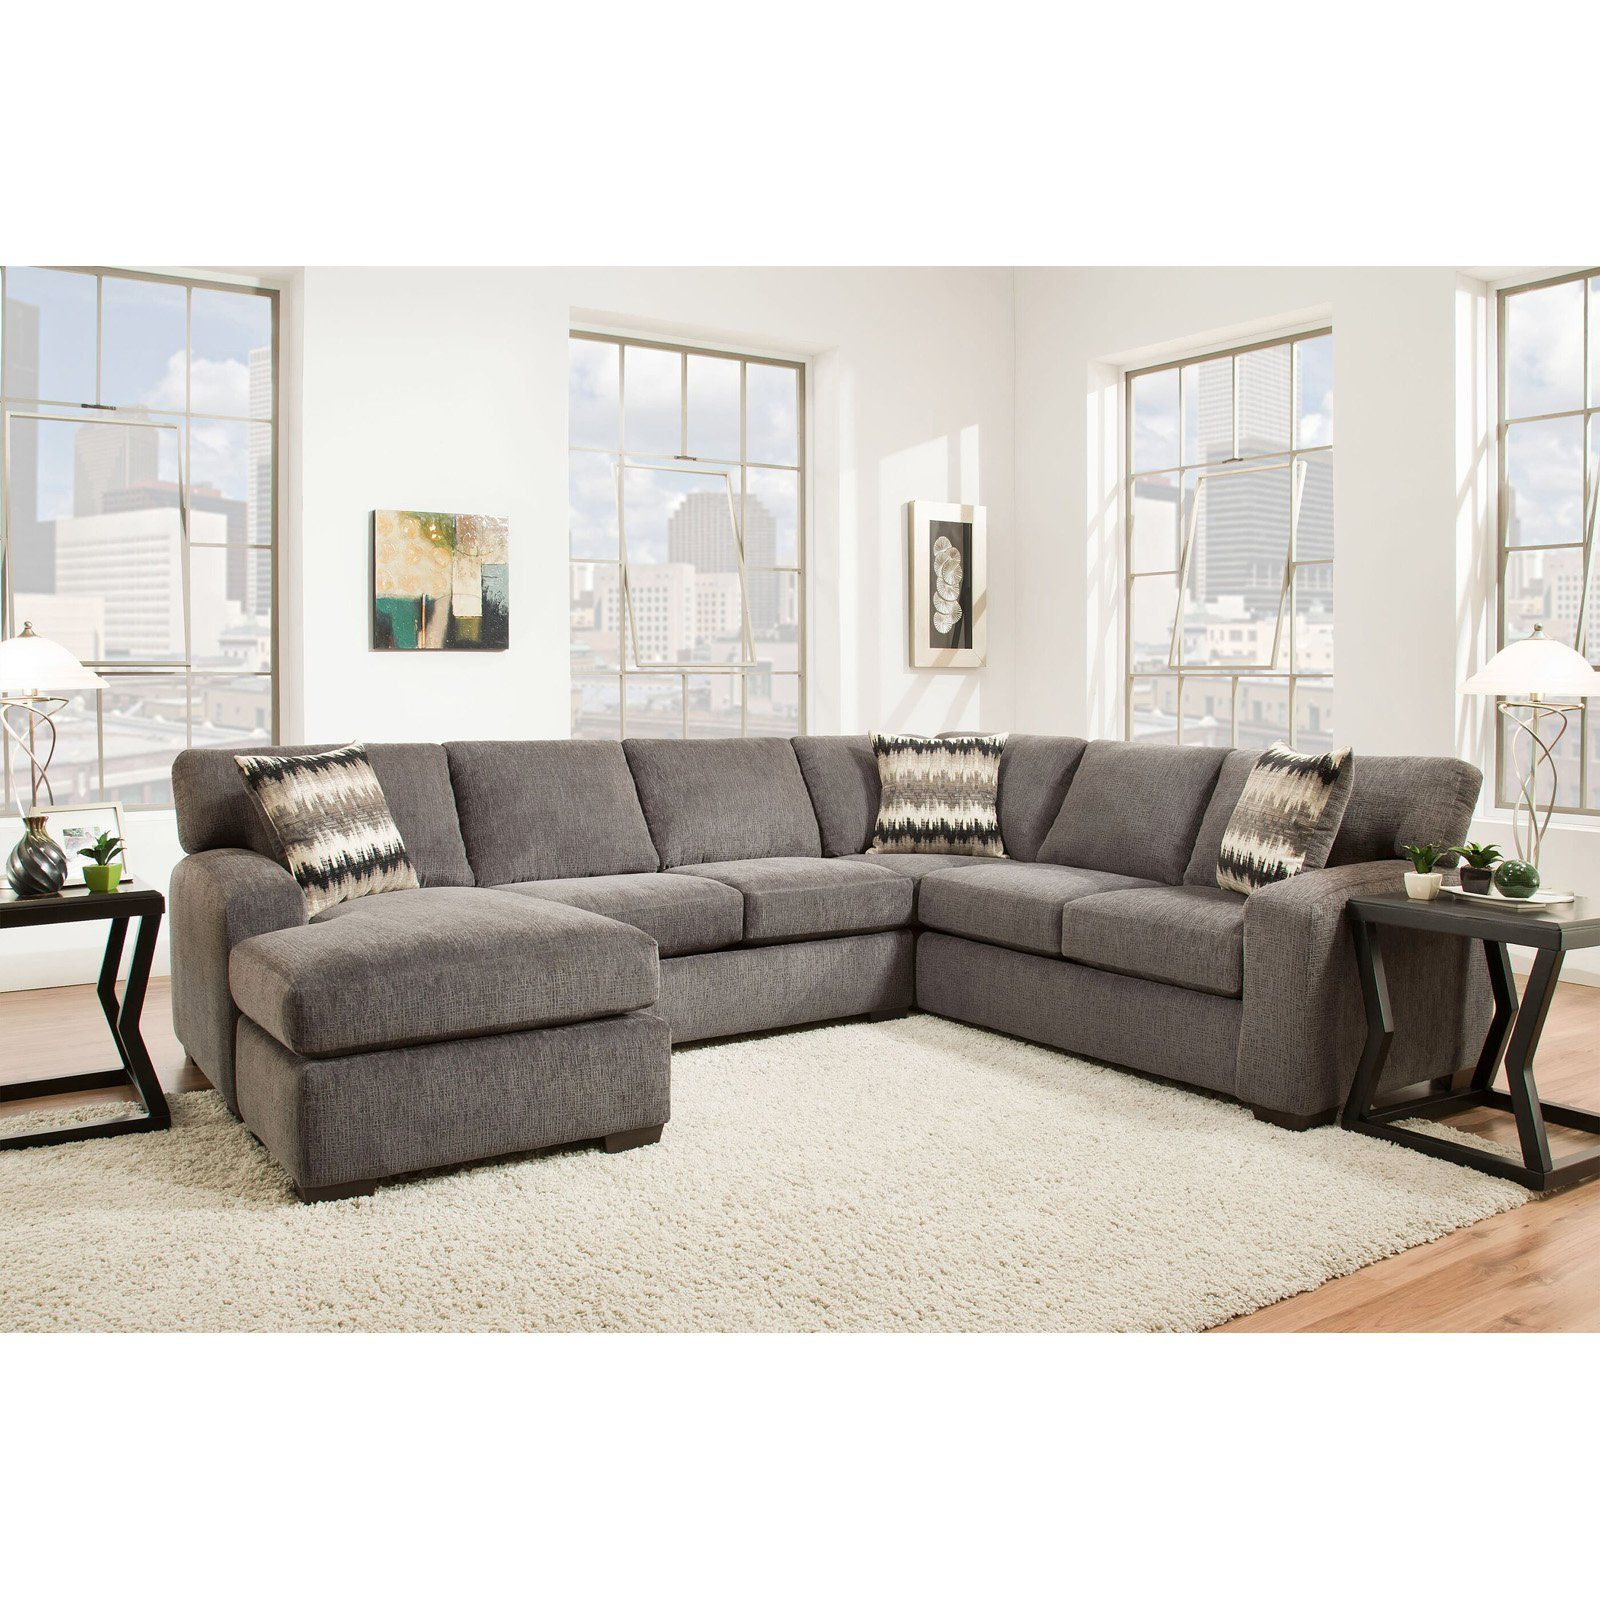 Chelsea Home Furniture Twist 2 Piece Sectional Perth - Living Room Chairs Perth